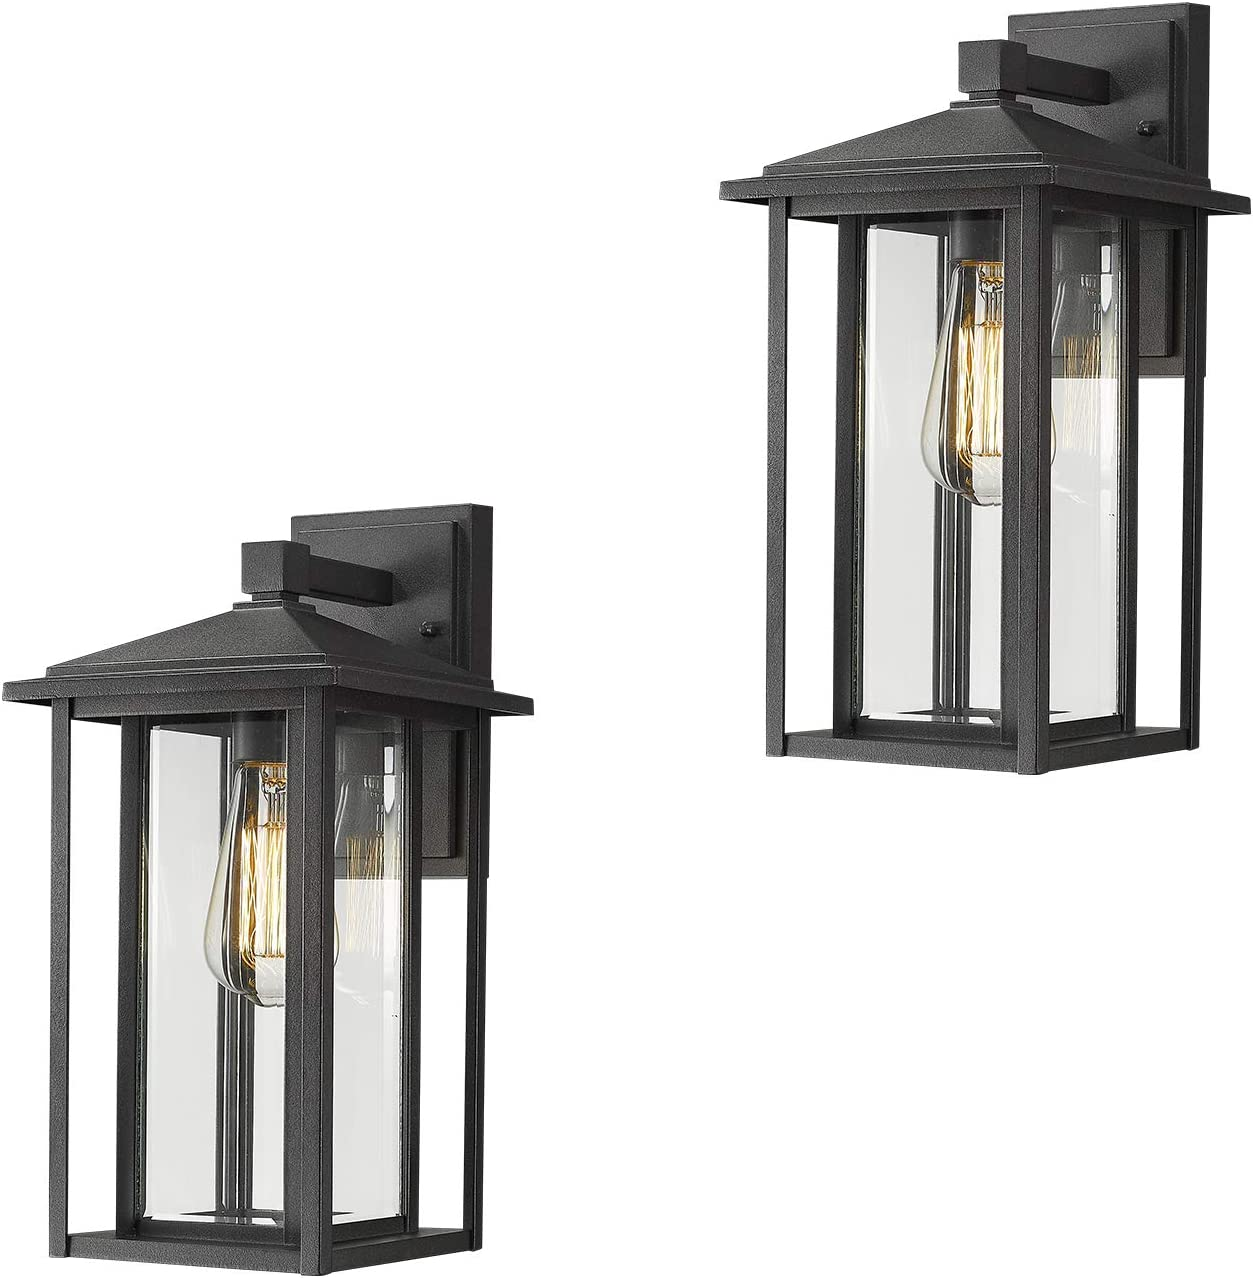 Zeyu Porch Wall Lantern 2 Pack Outdoor Light Fixtures Wall Mount In Black Finish With Clear Glass 1951 2pk Bk Amazon Com